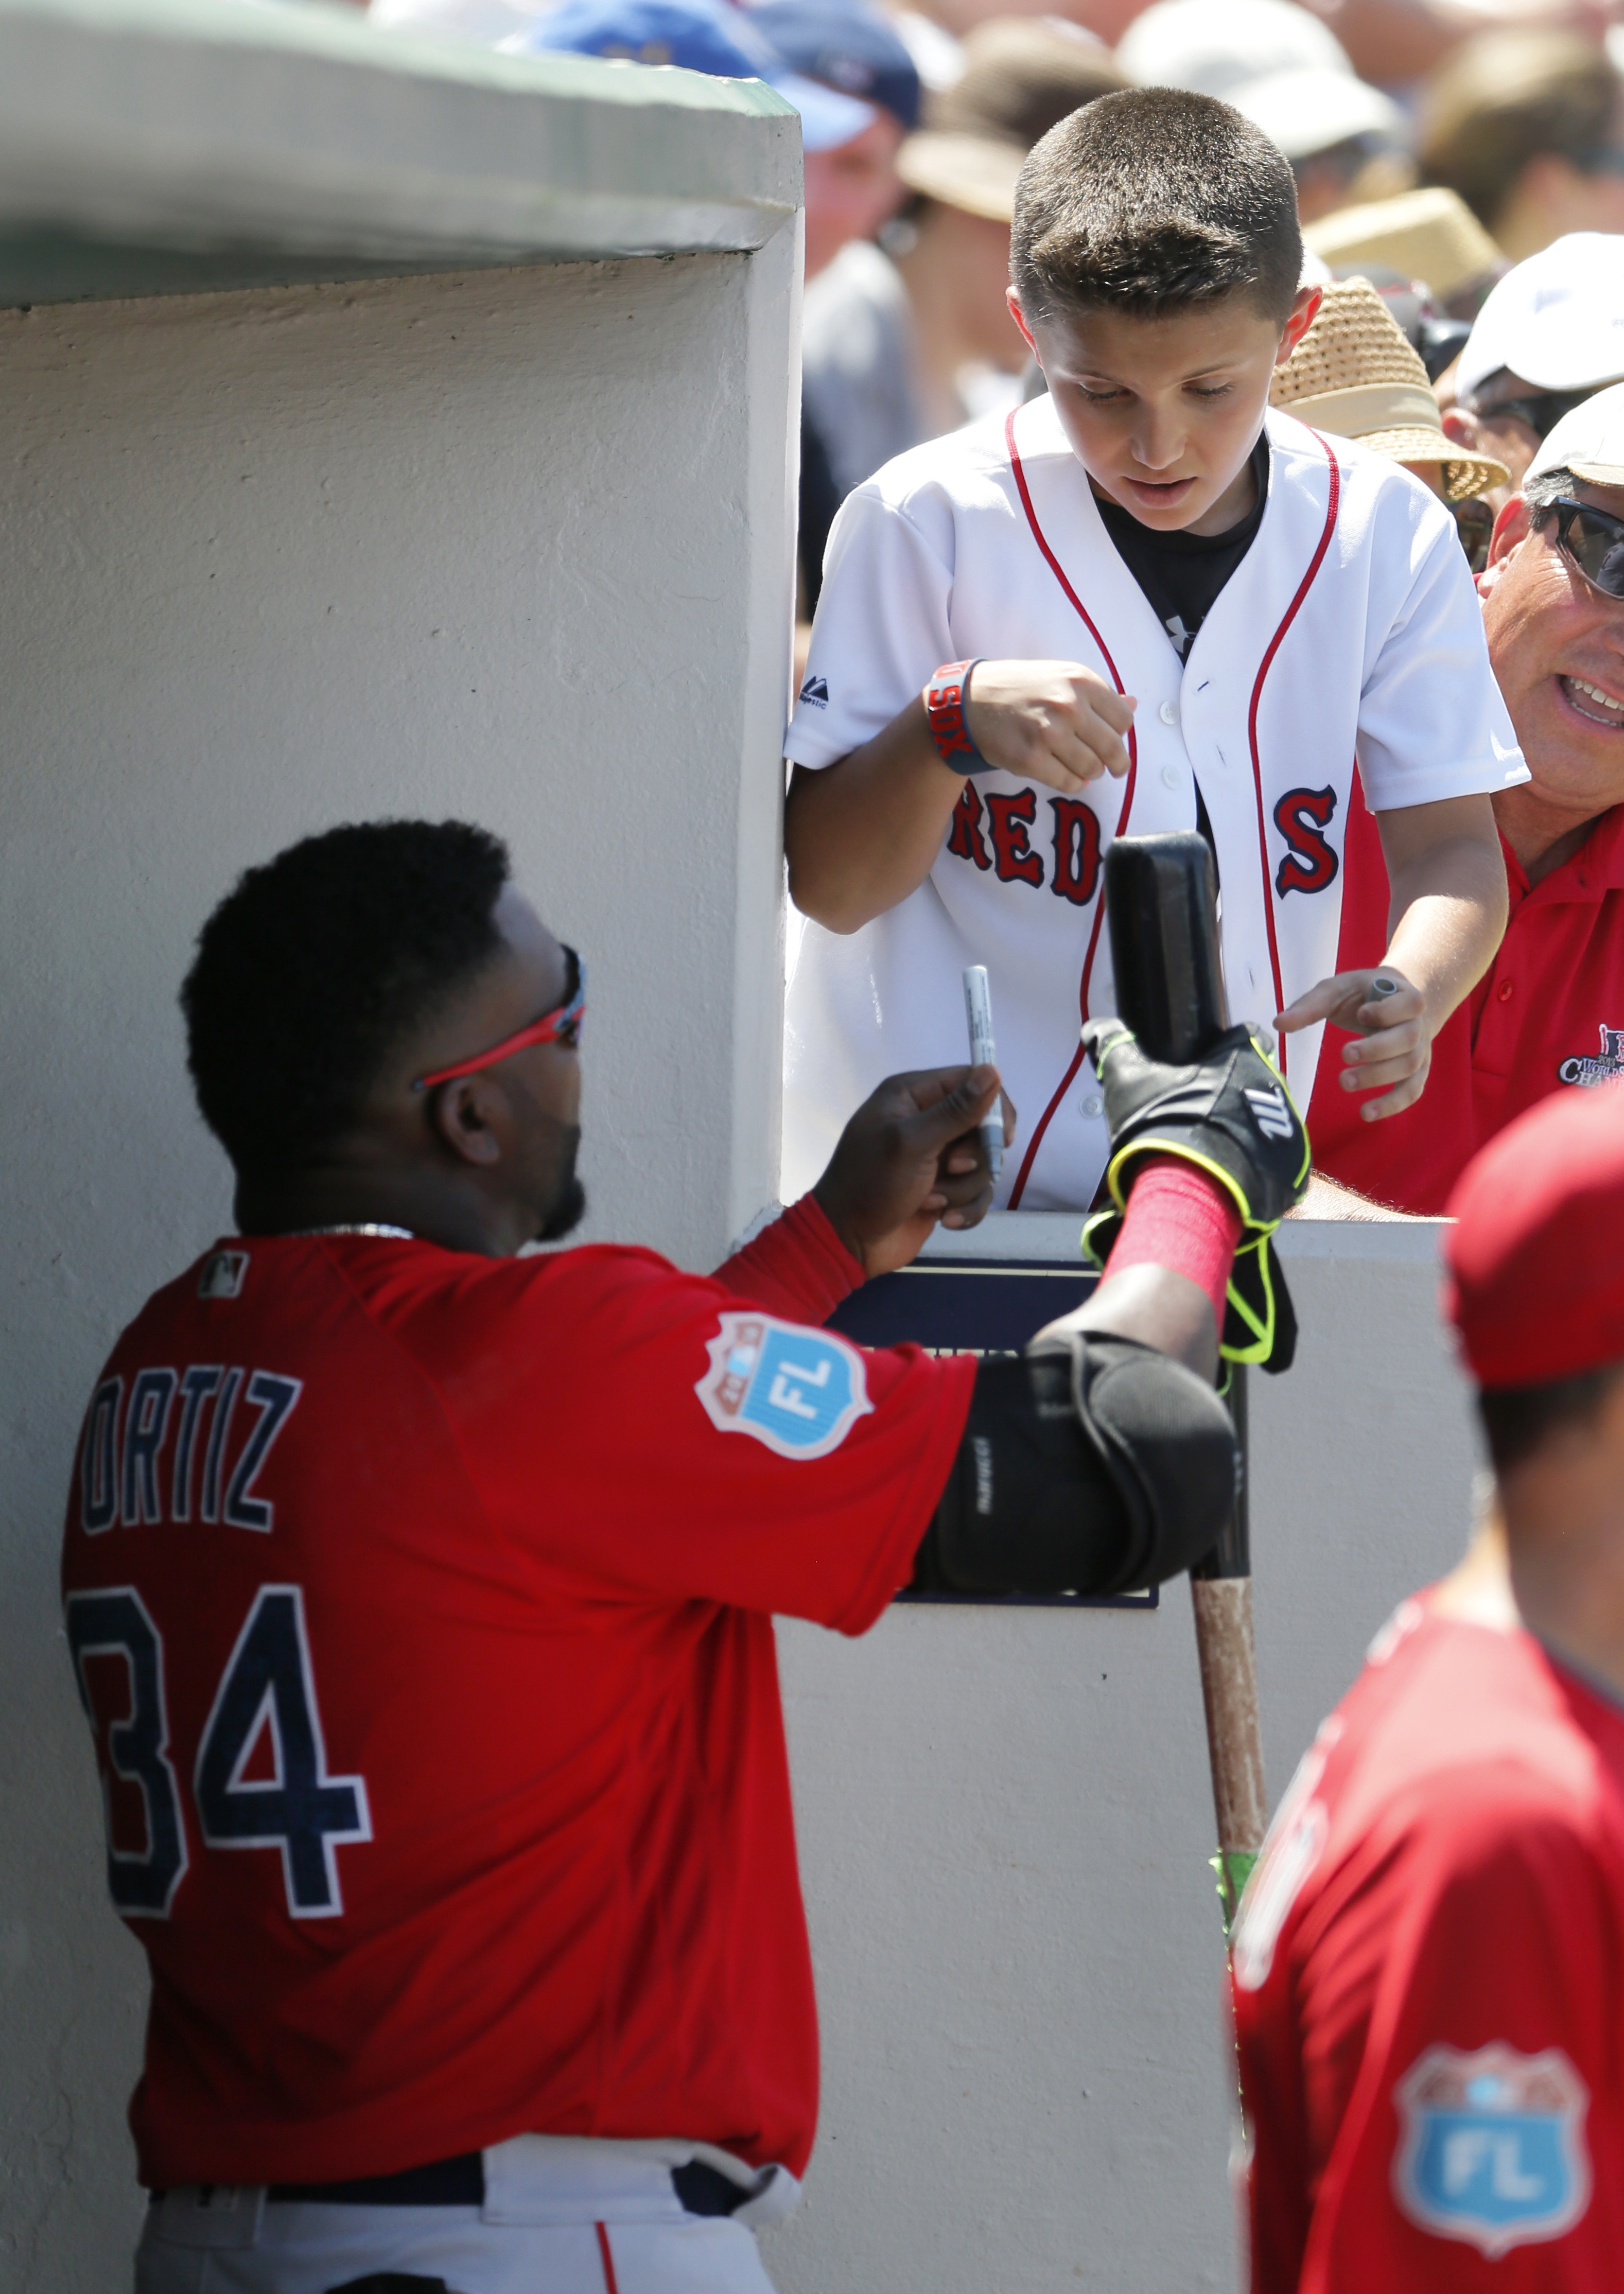 Boston Red Sox's David Ortiz (34) hands a bat to a young fan after autographing it before going out for his at-bat in the fifth inning of a spring training baseball game against the Boston Red Sox on Thursday, March 31, 2016, in Fort Myers, Fla. (AP Photo